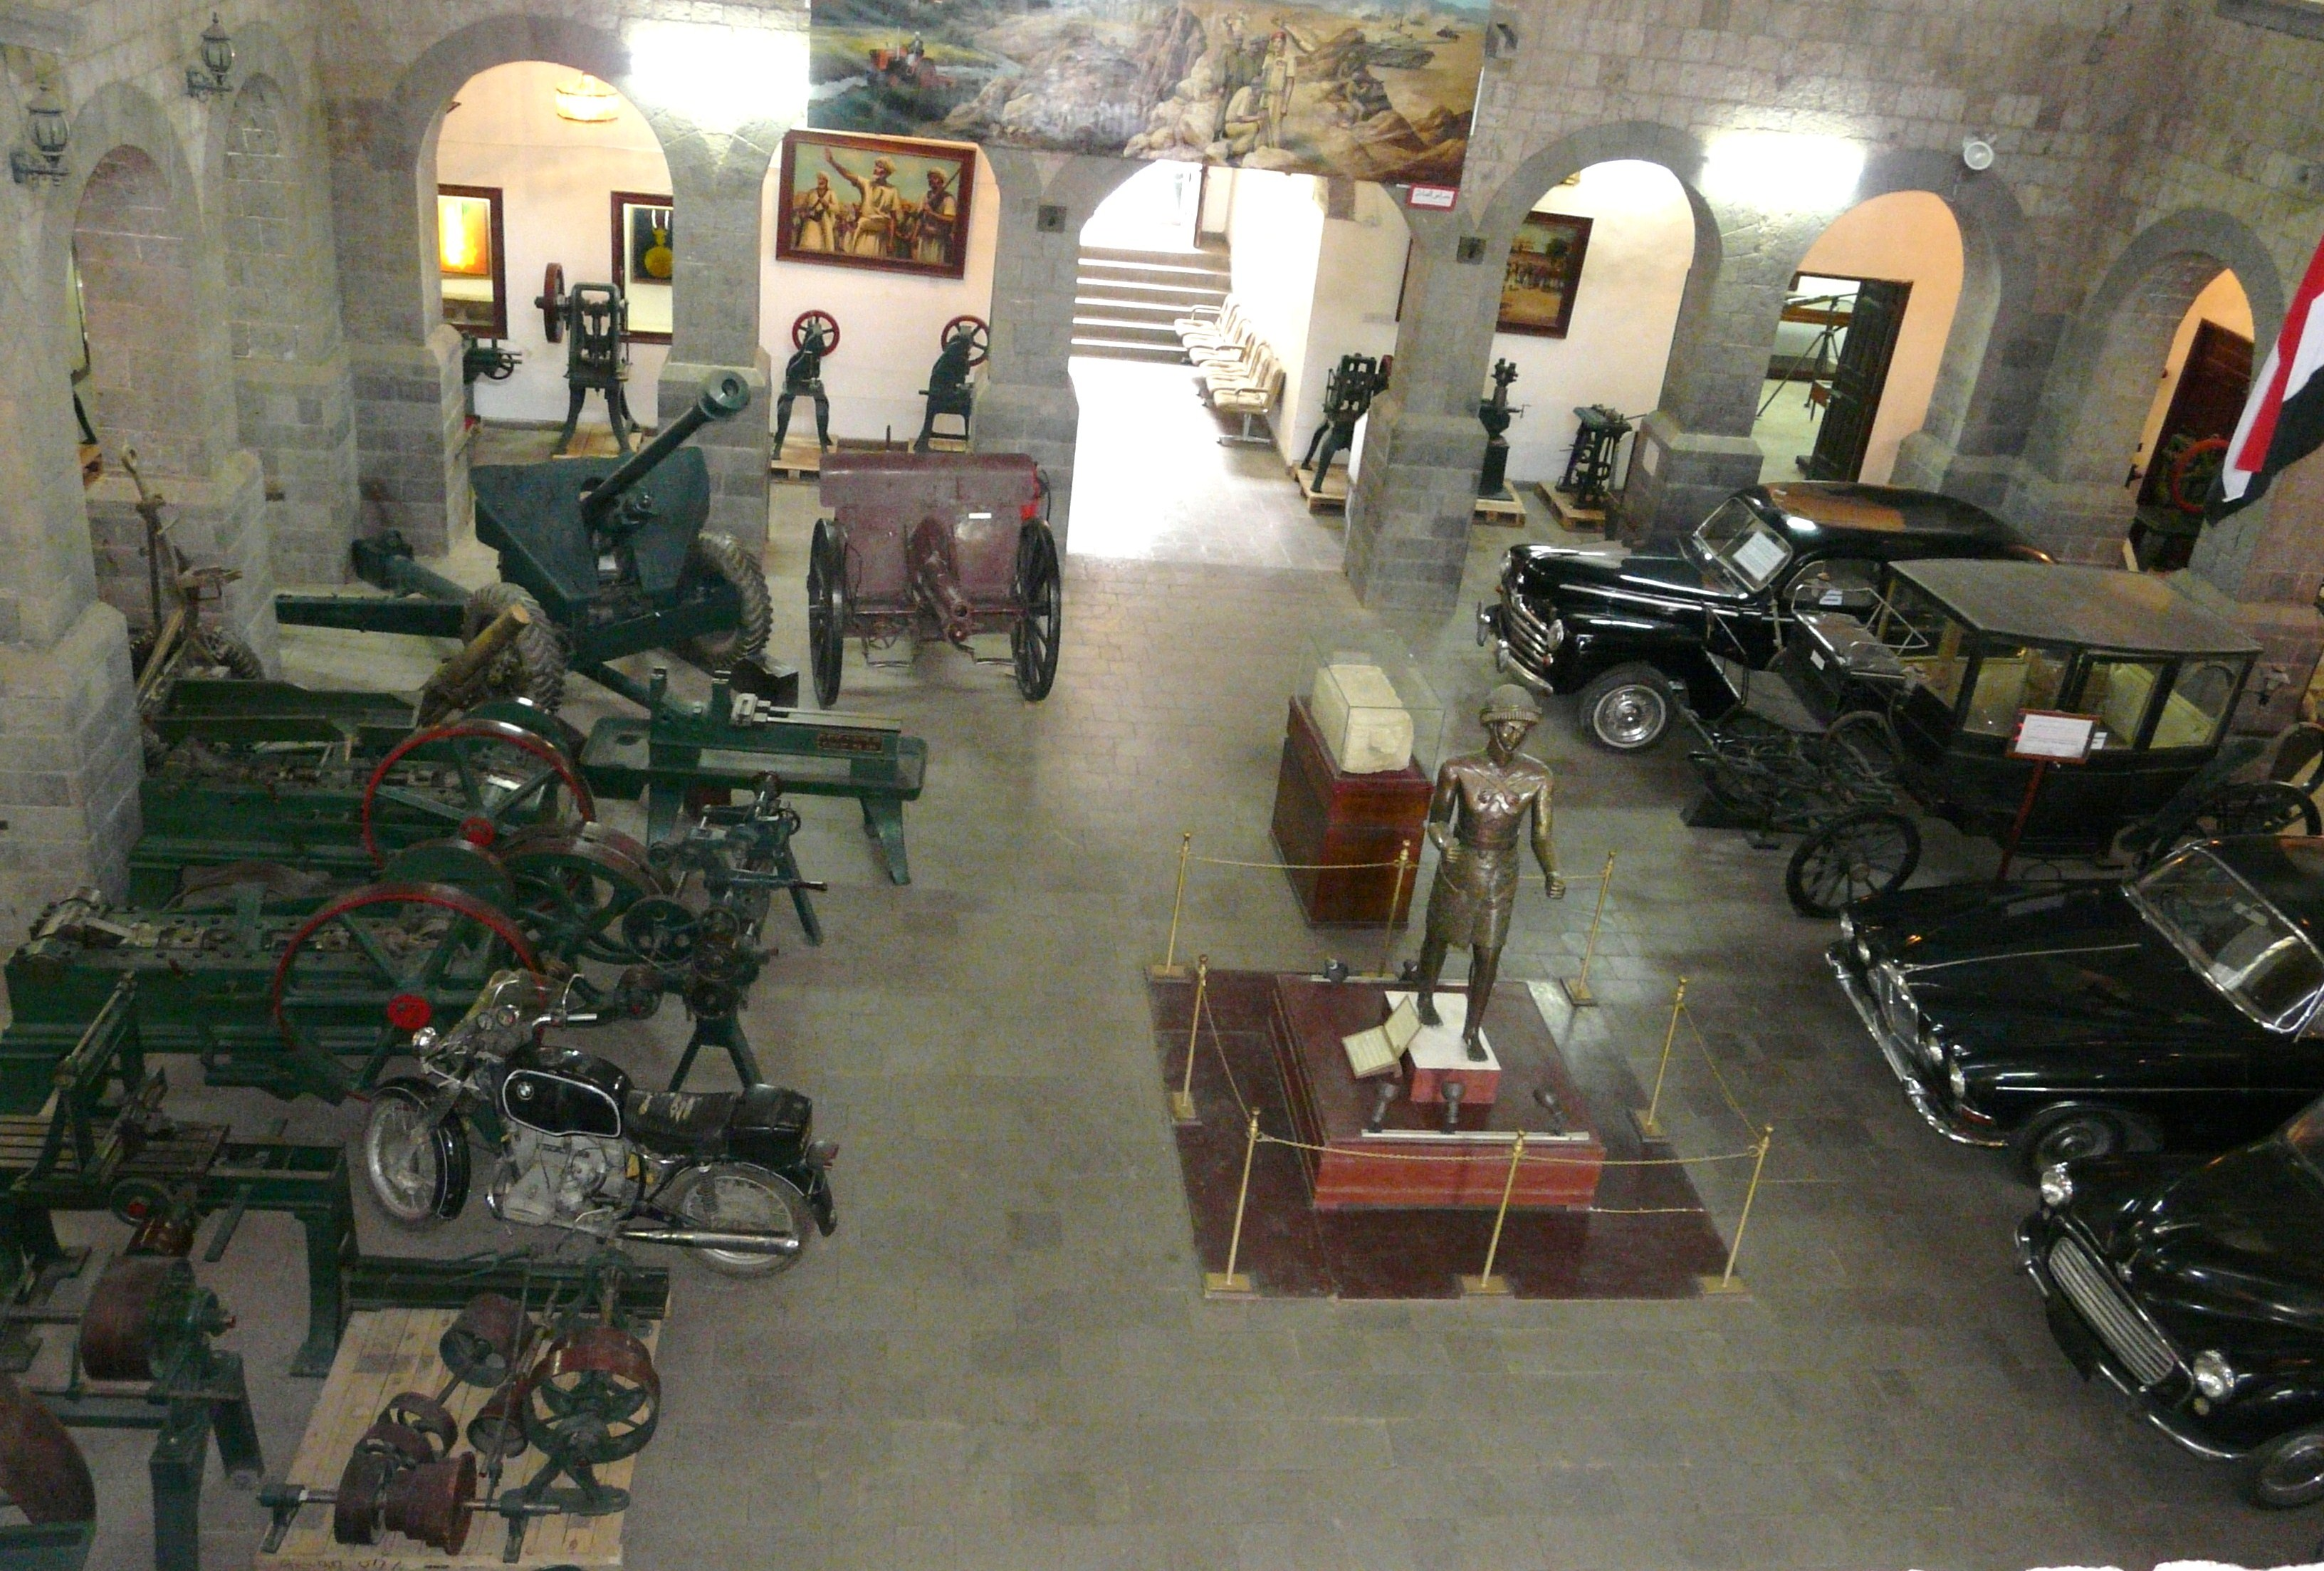 File:Sana military museum 02.JPG - Wikimedia Commons